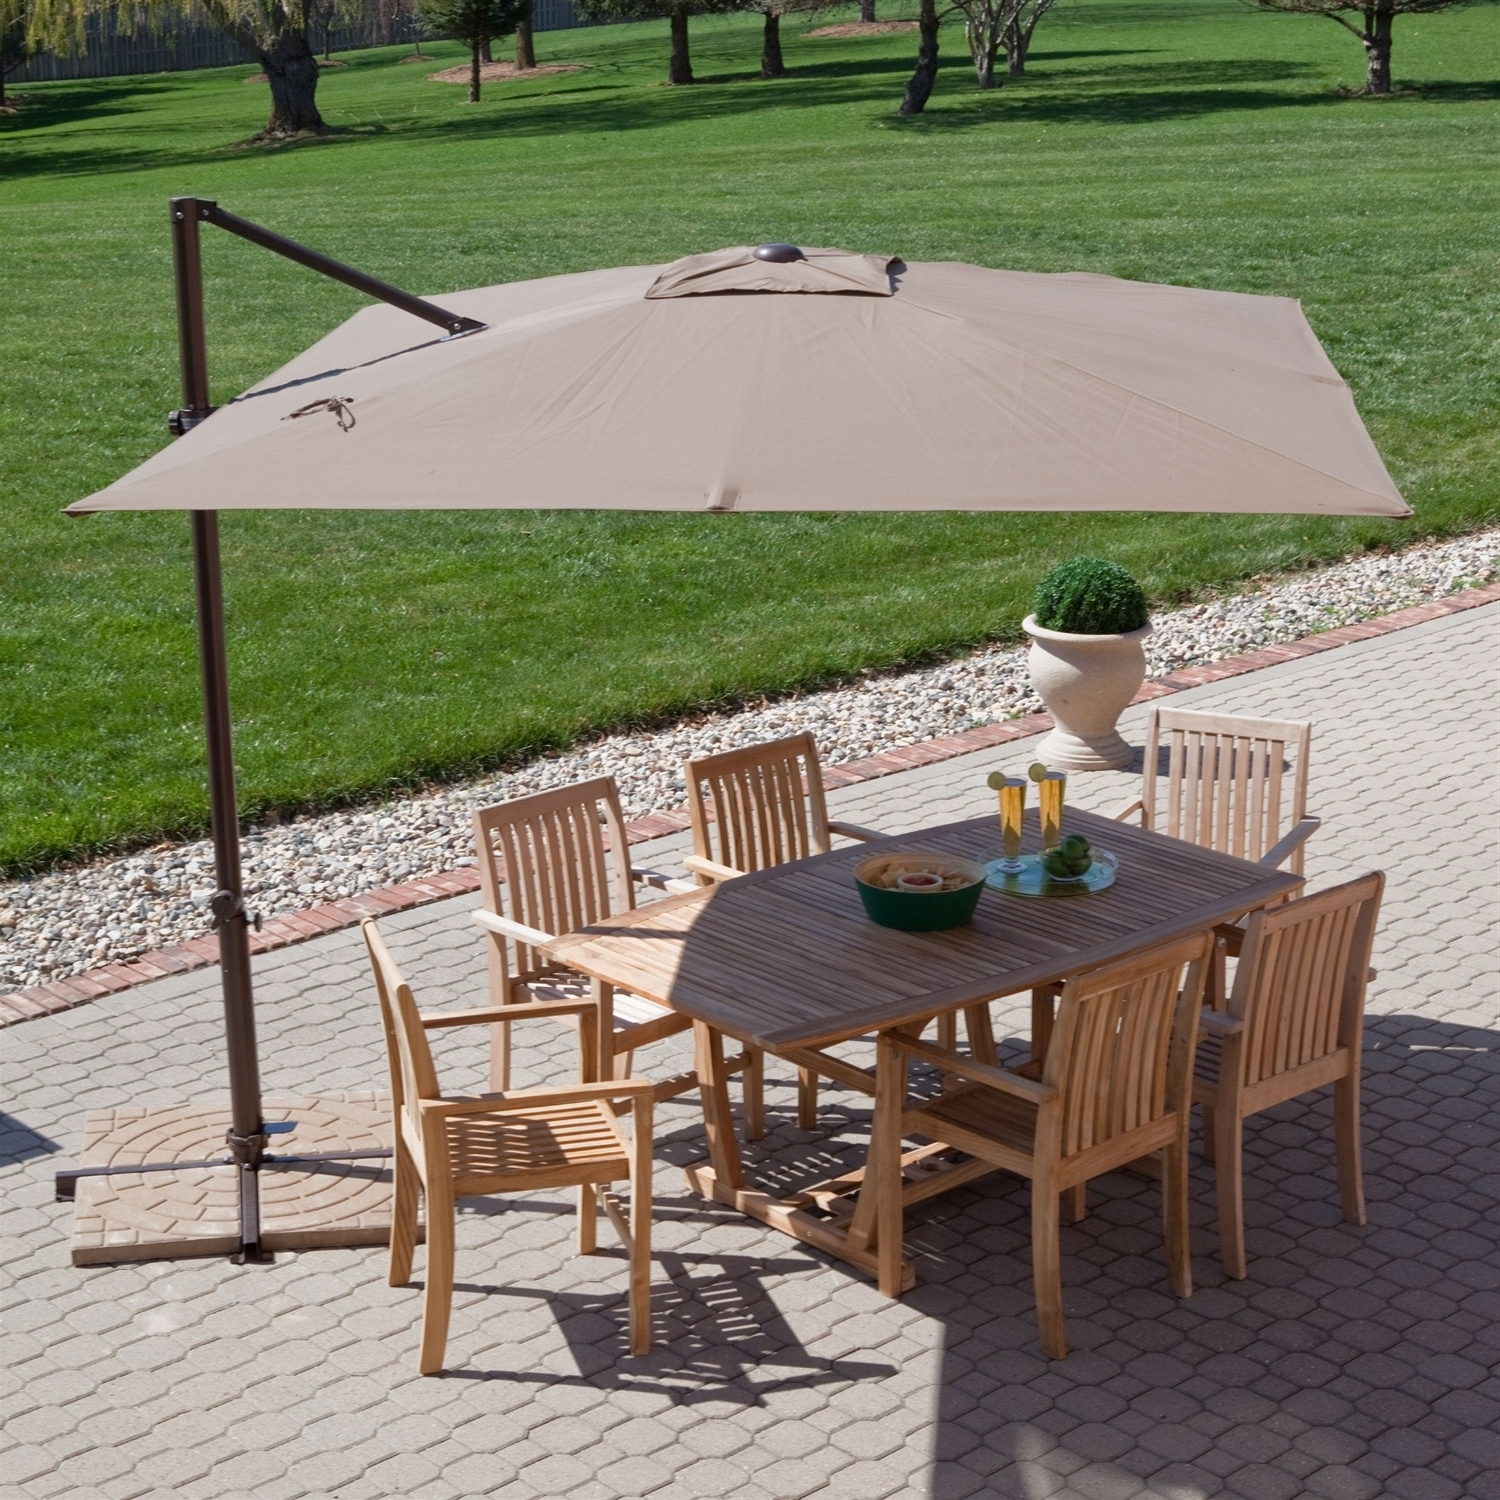 Latest Free Standing Umbrellas For Patio For A Guide To Buying Offset Patio Umbrella – Blogbeen (View 13 of 20)